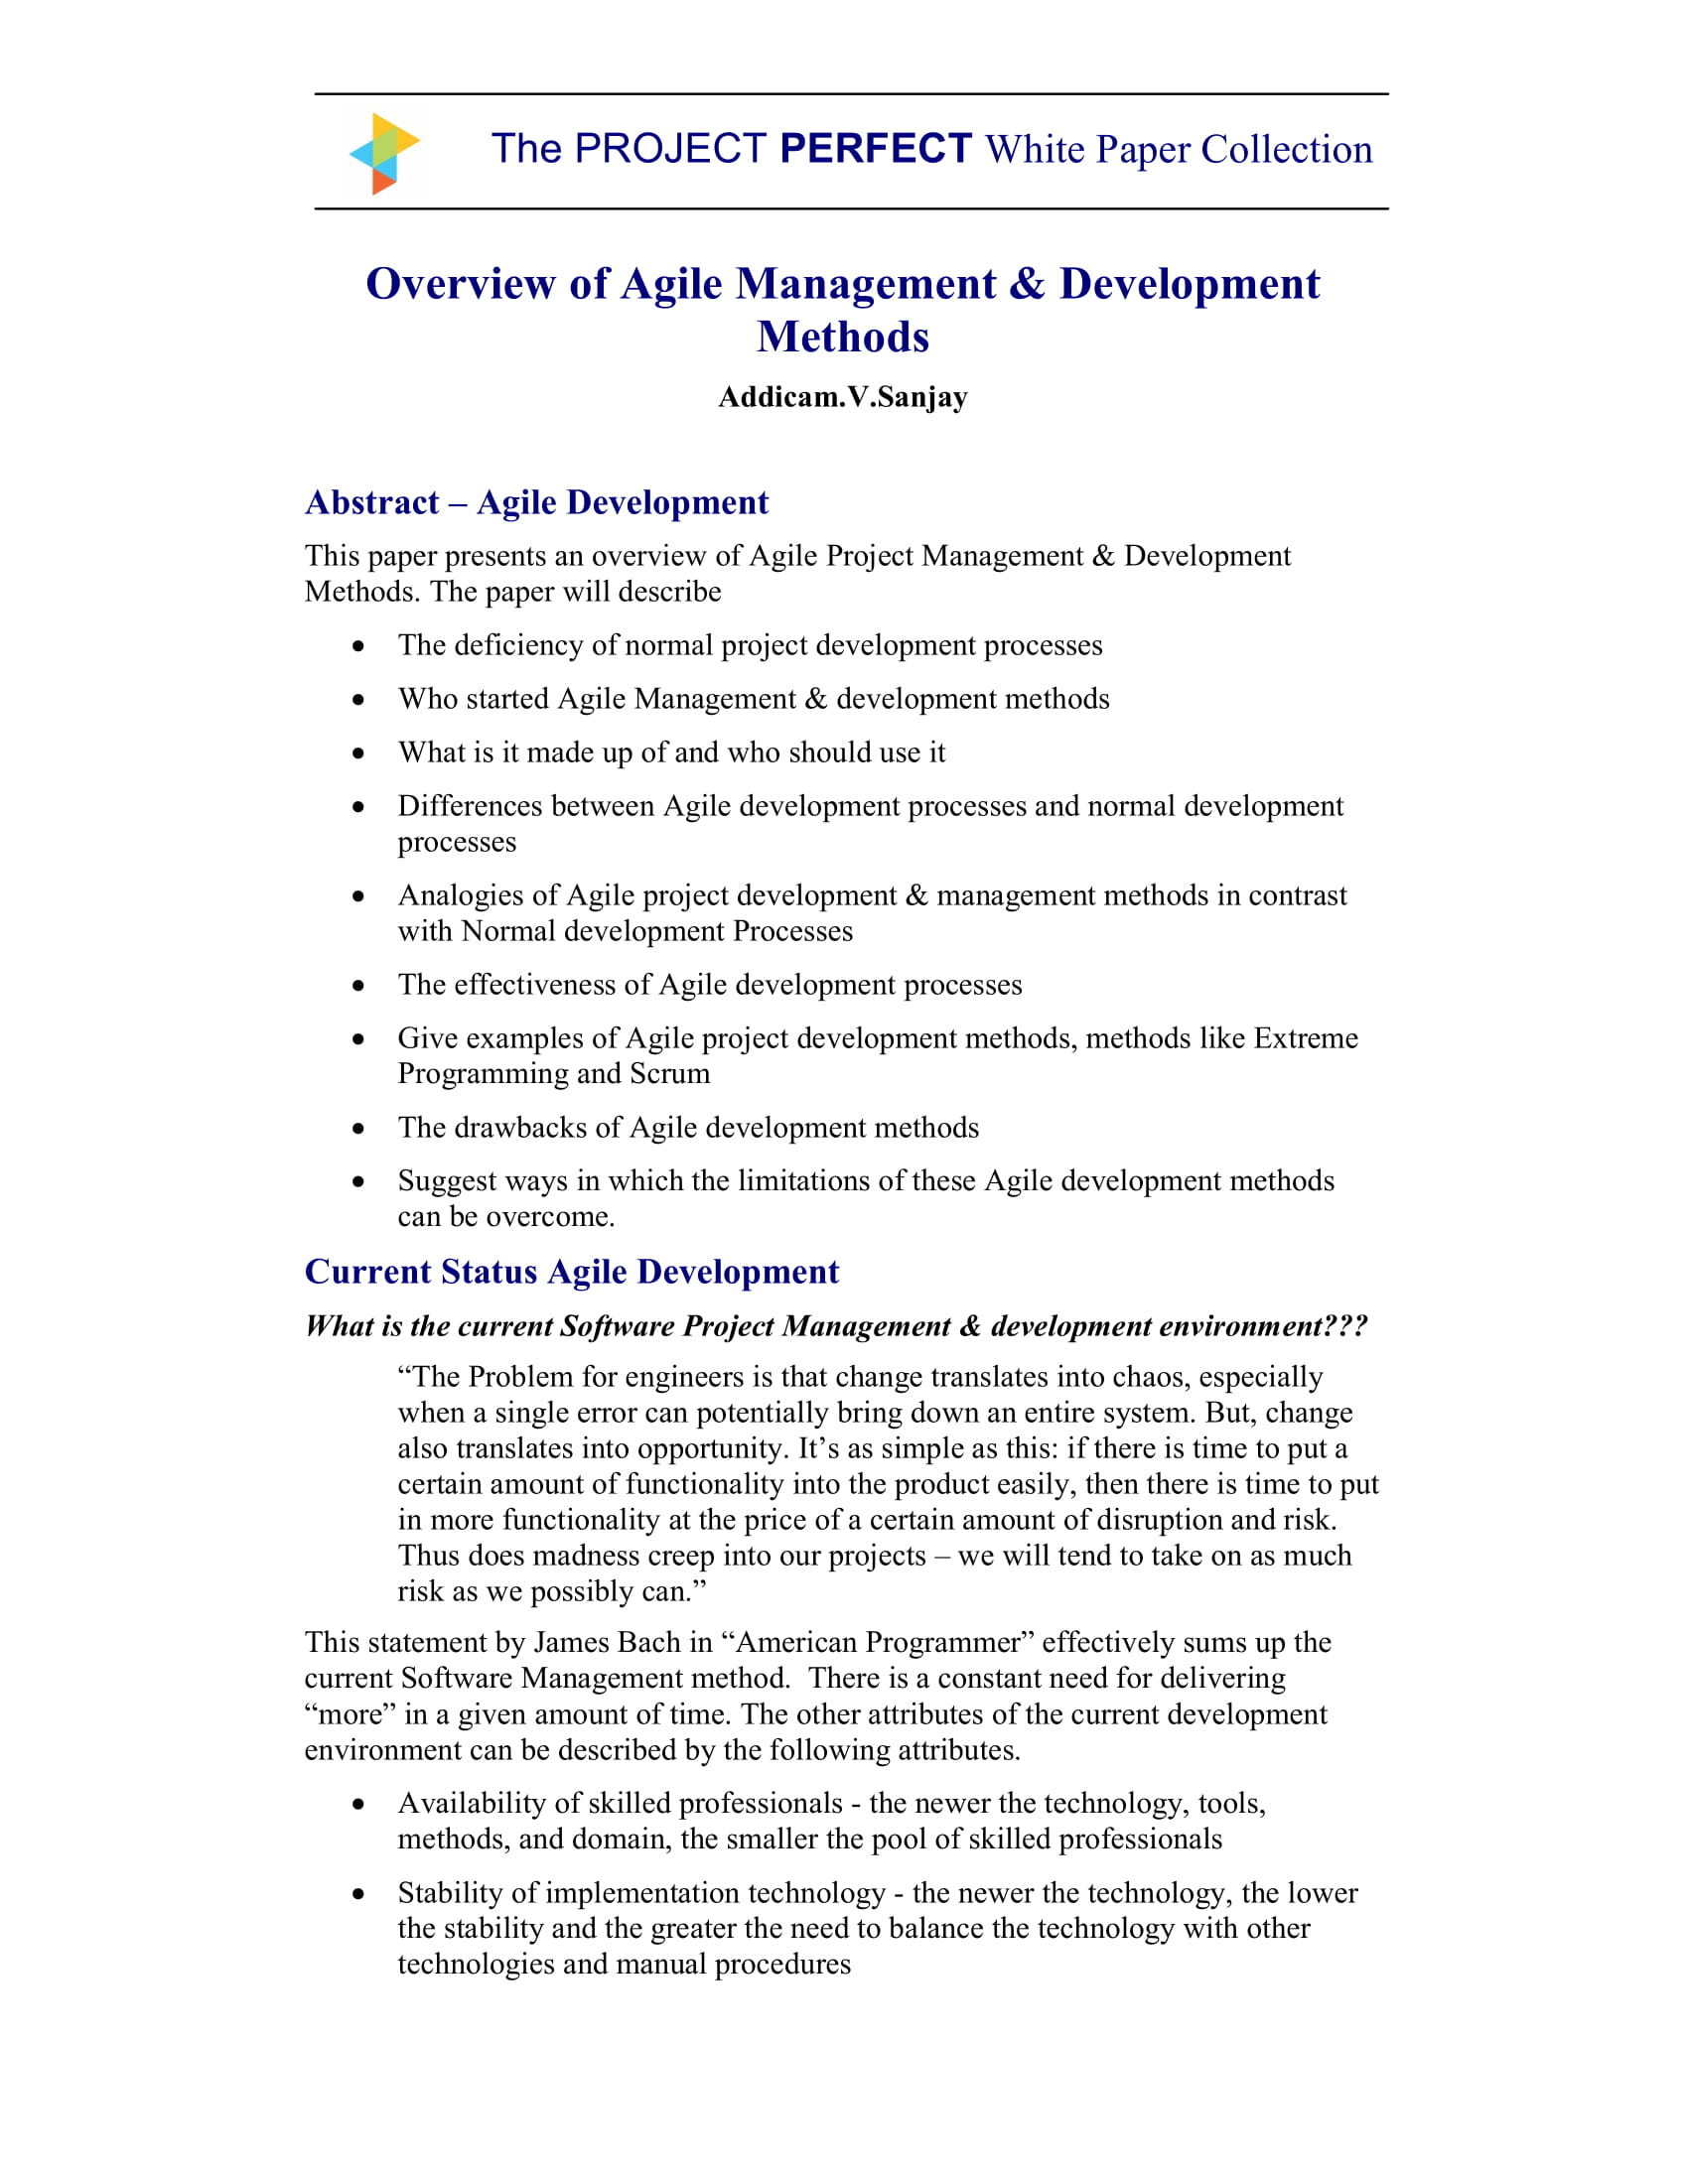 agile project management and development plan example 01